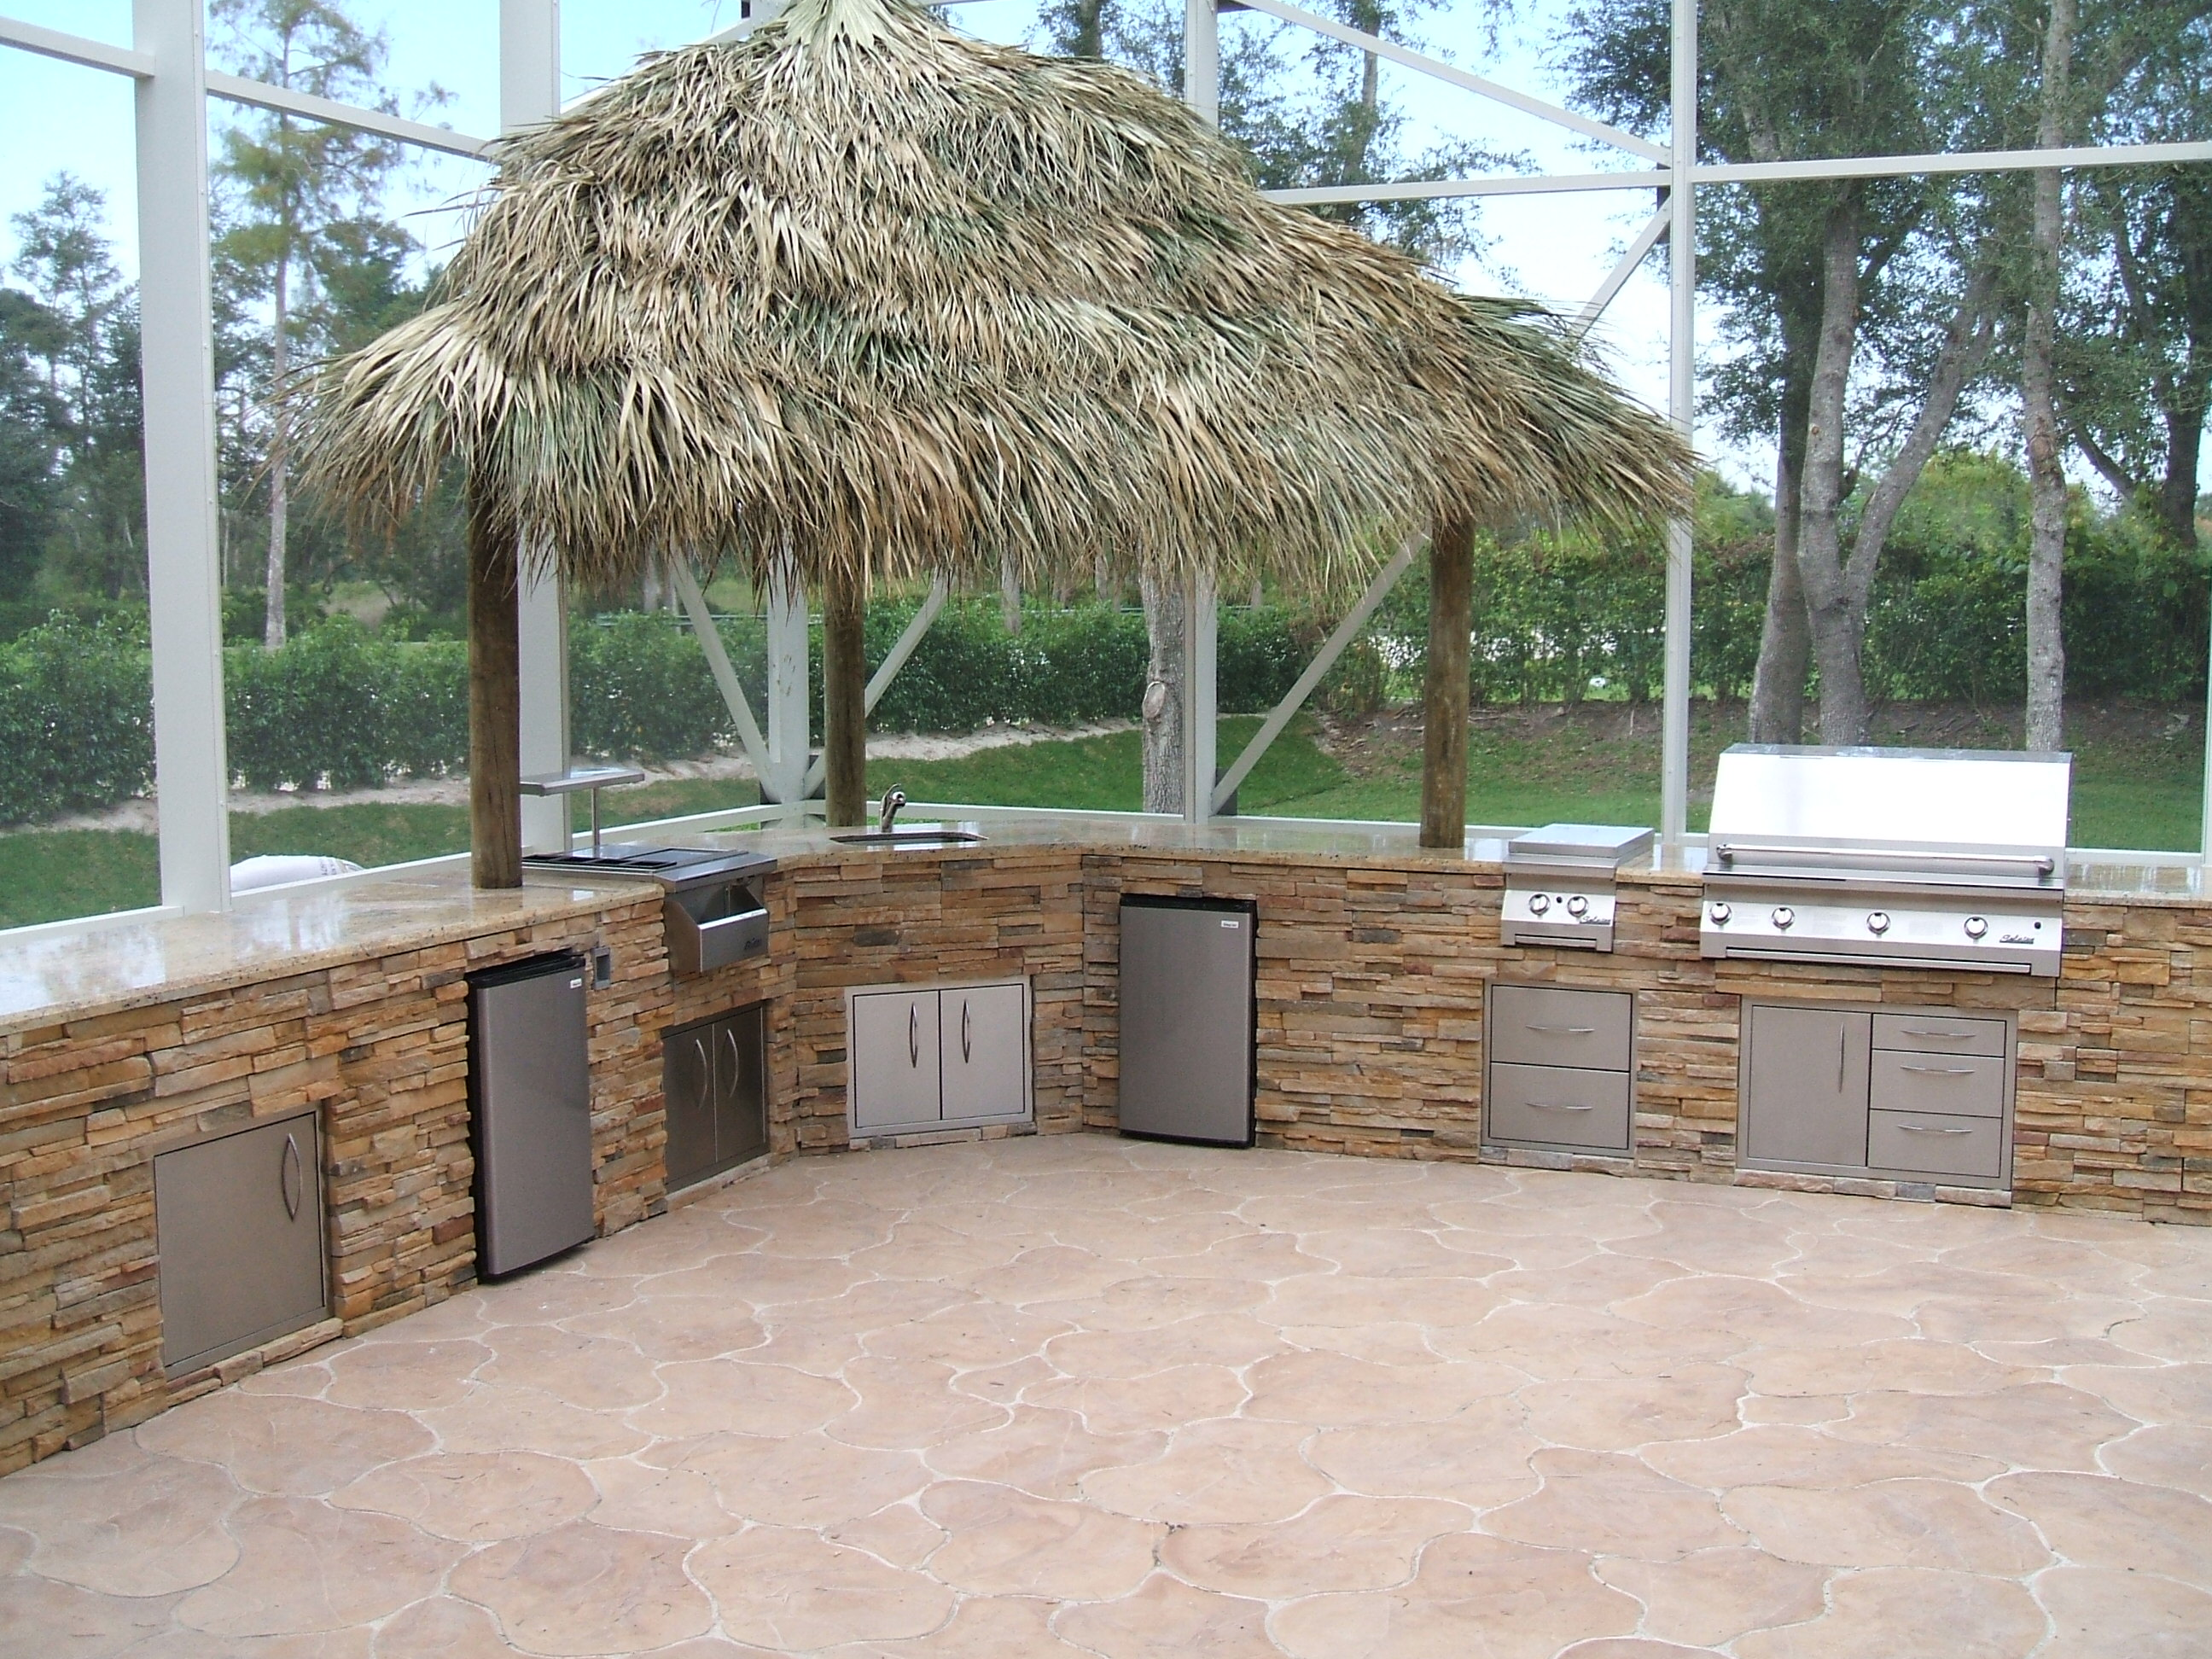 Building An Outdoor Kitchen Custom Outdoor Kitchen Design In A Outdoor Room With Cover Gas